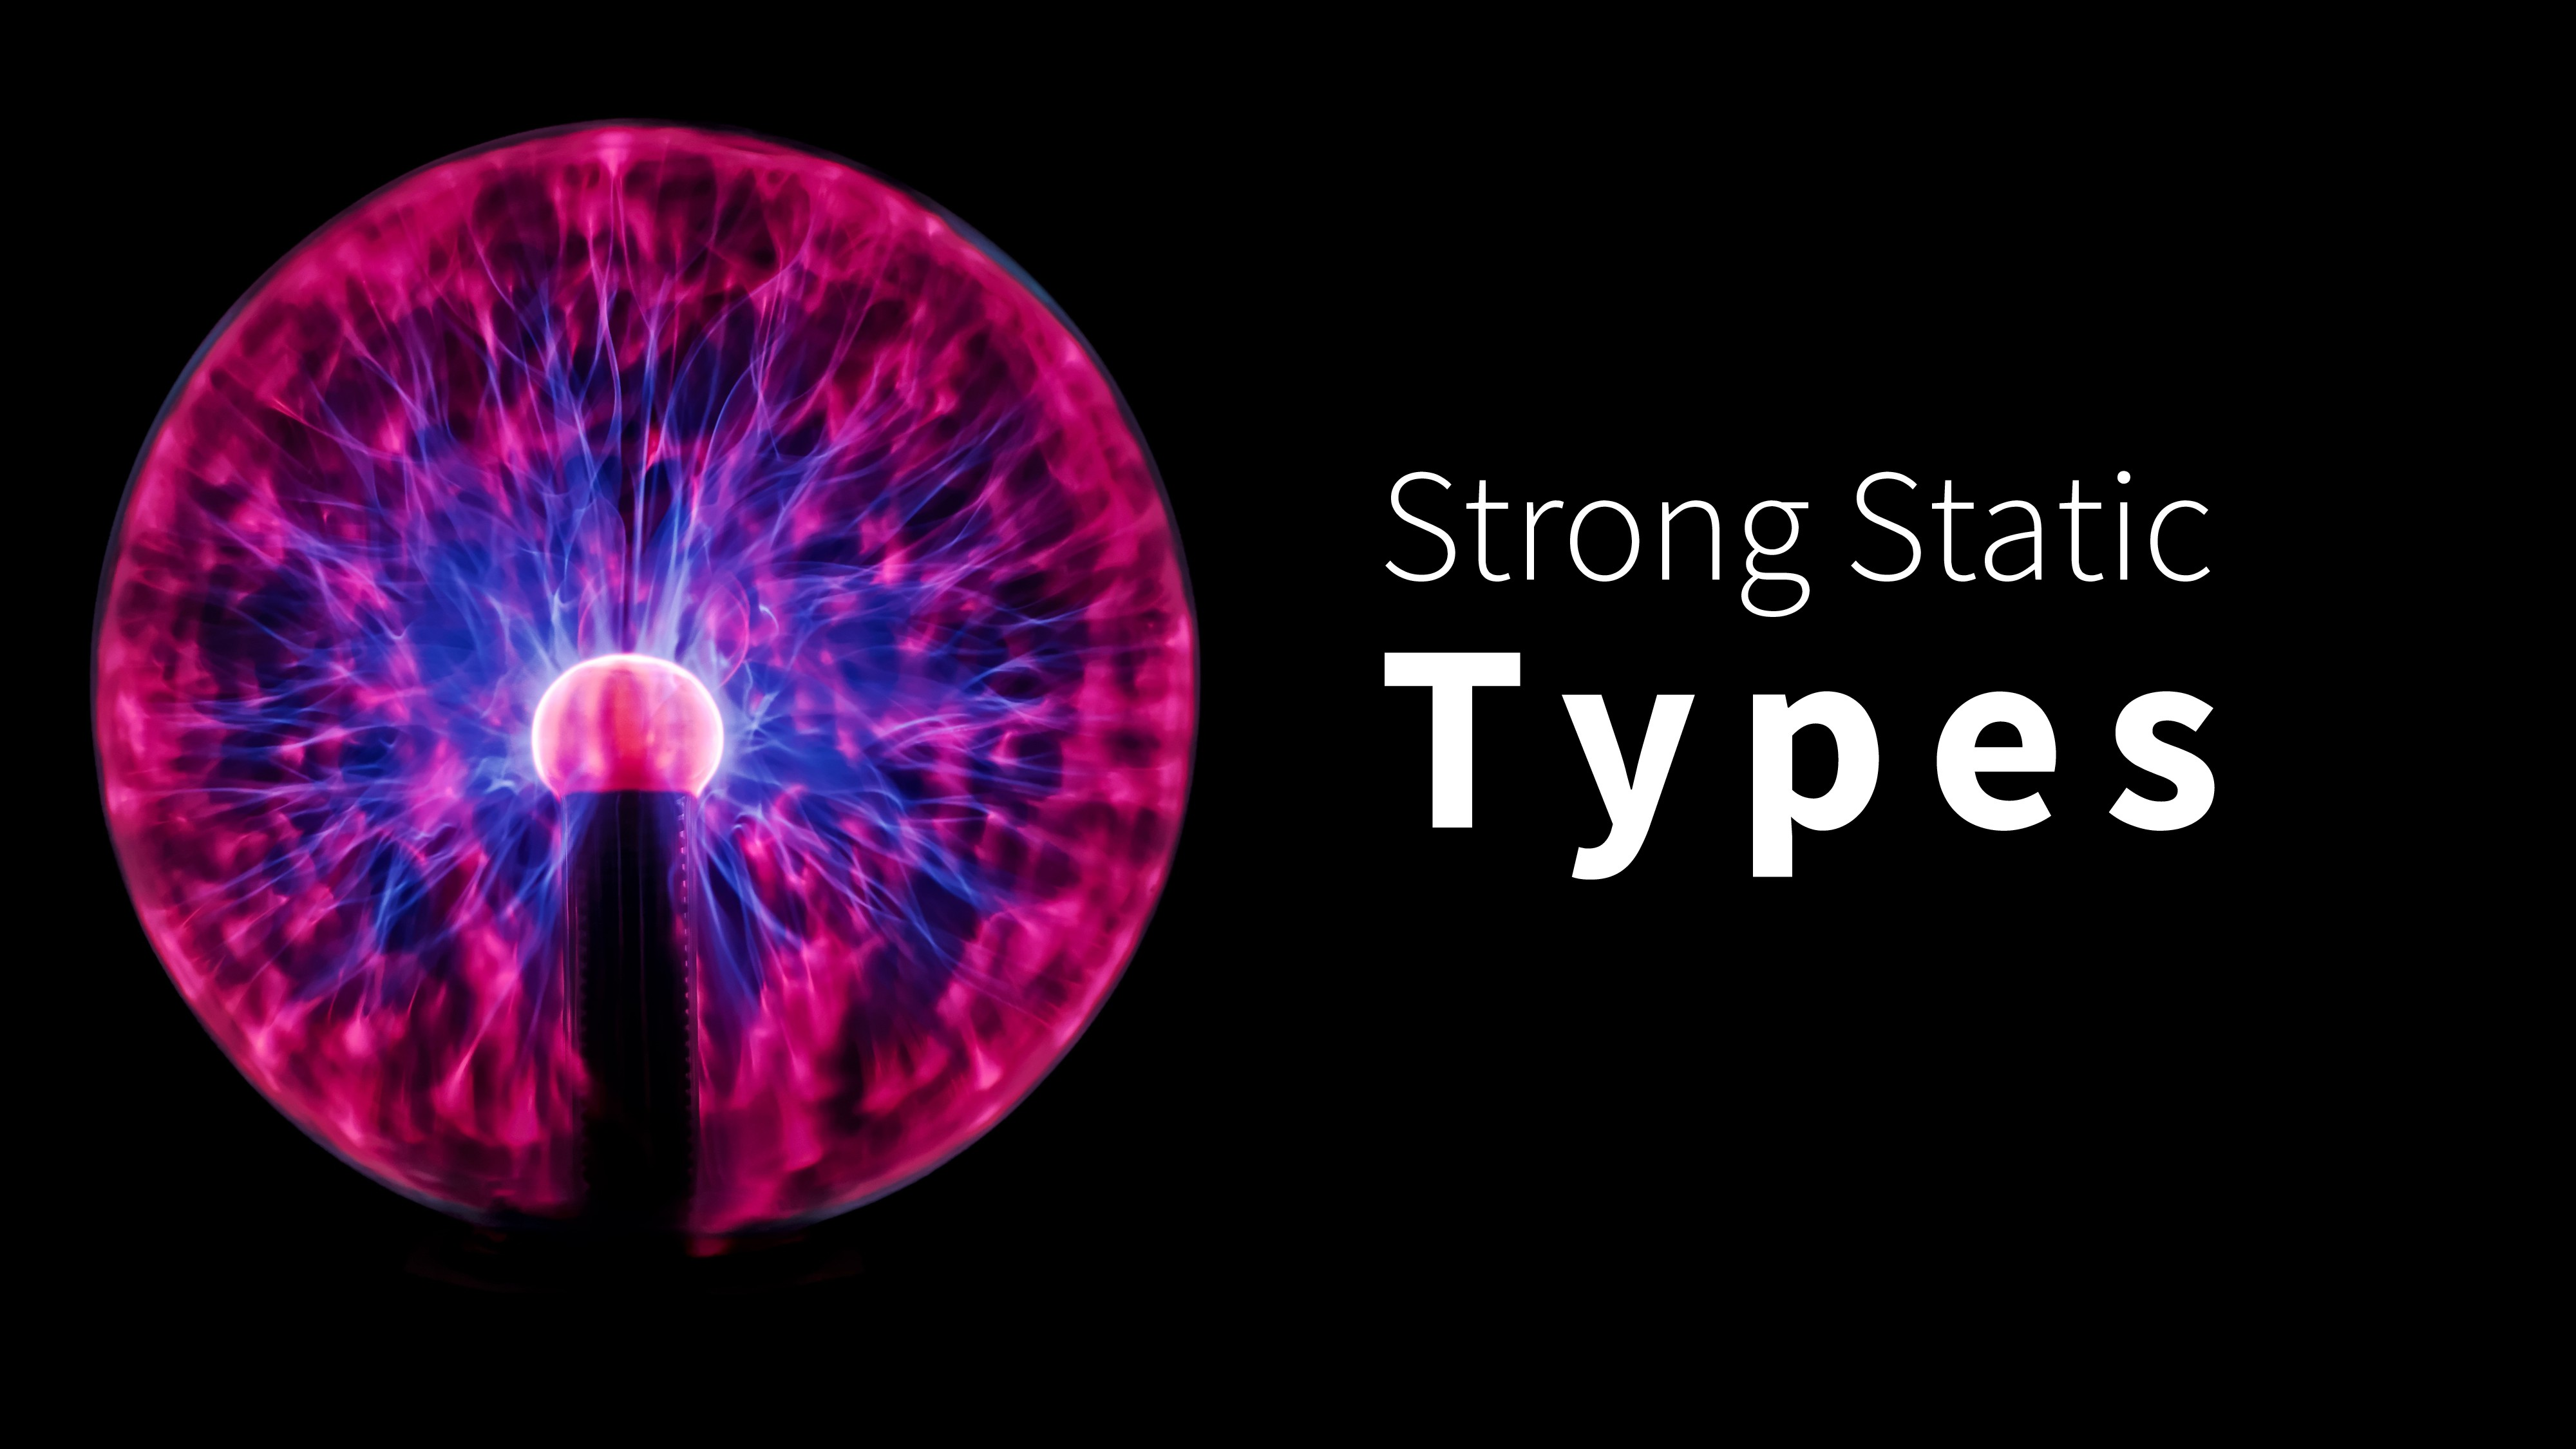 Strong Static Types